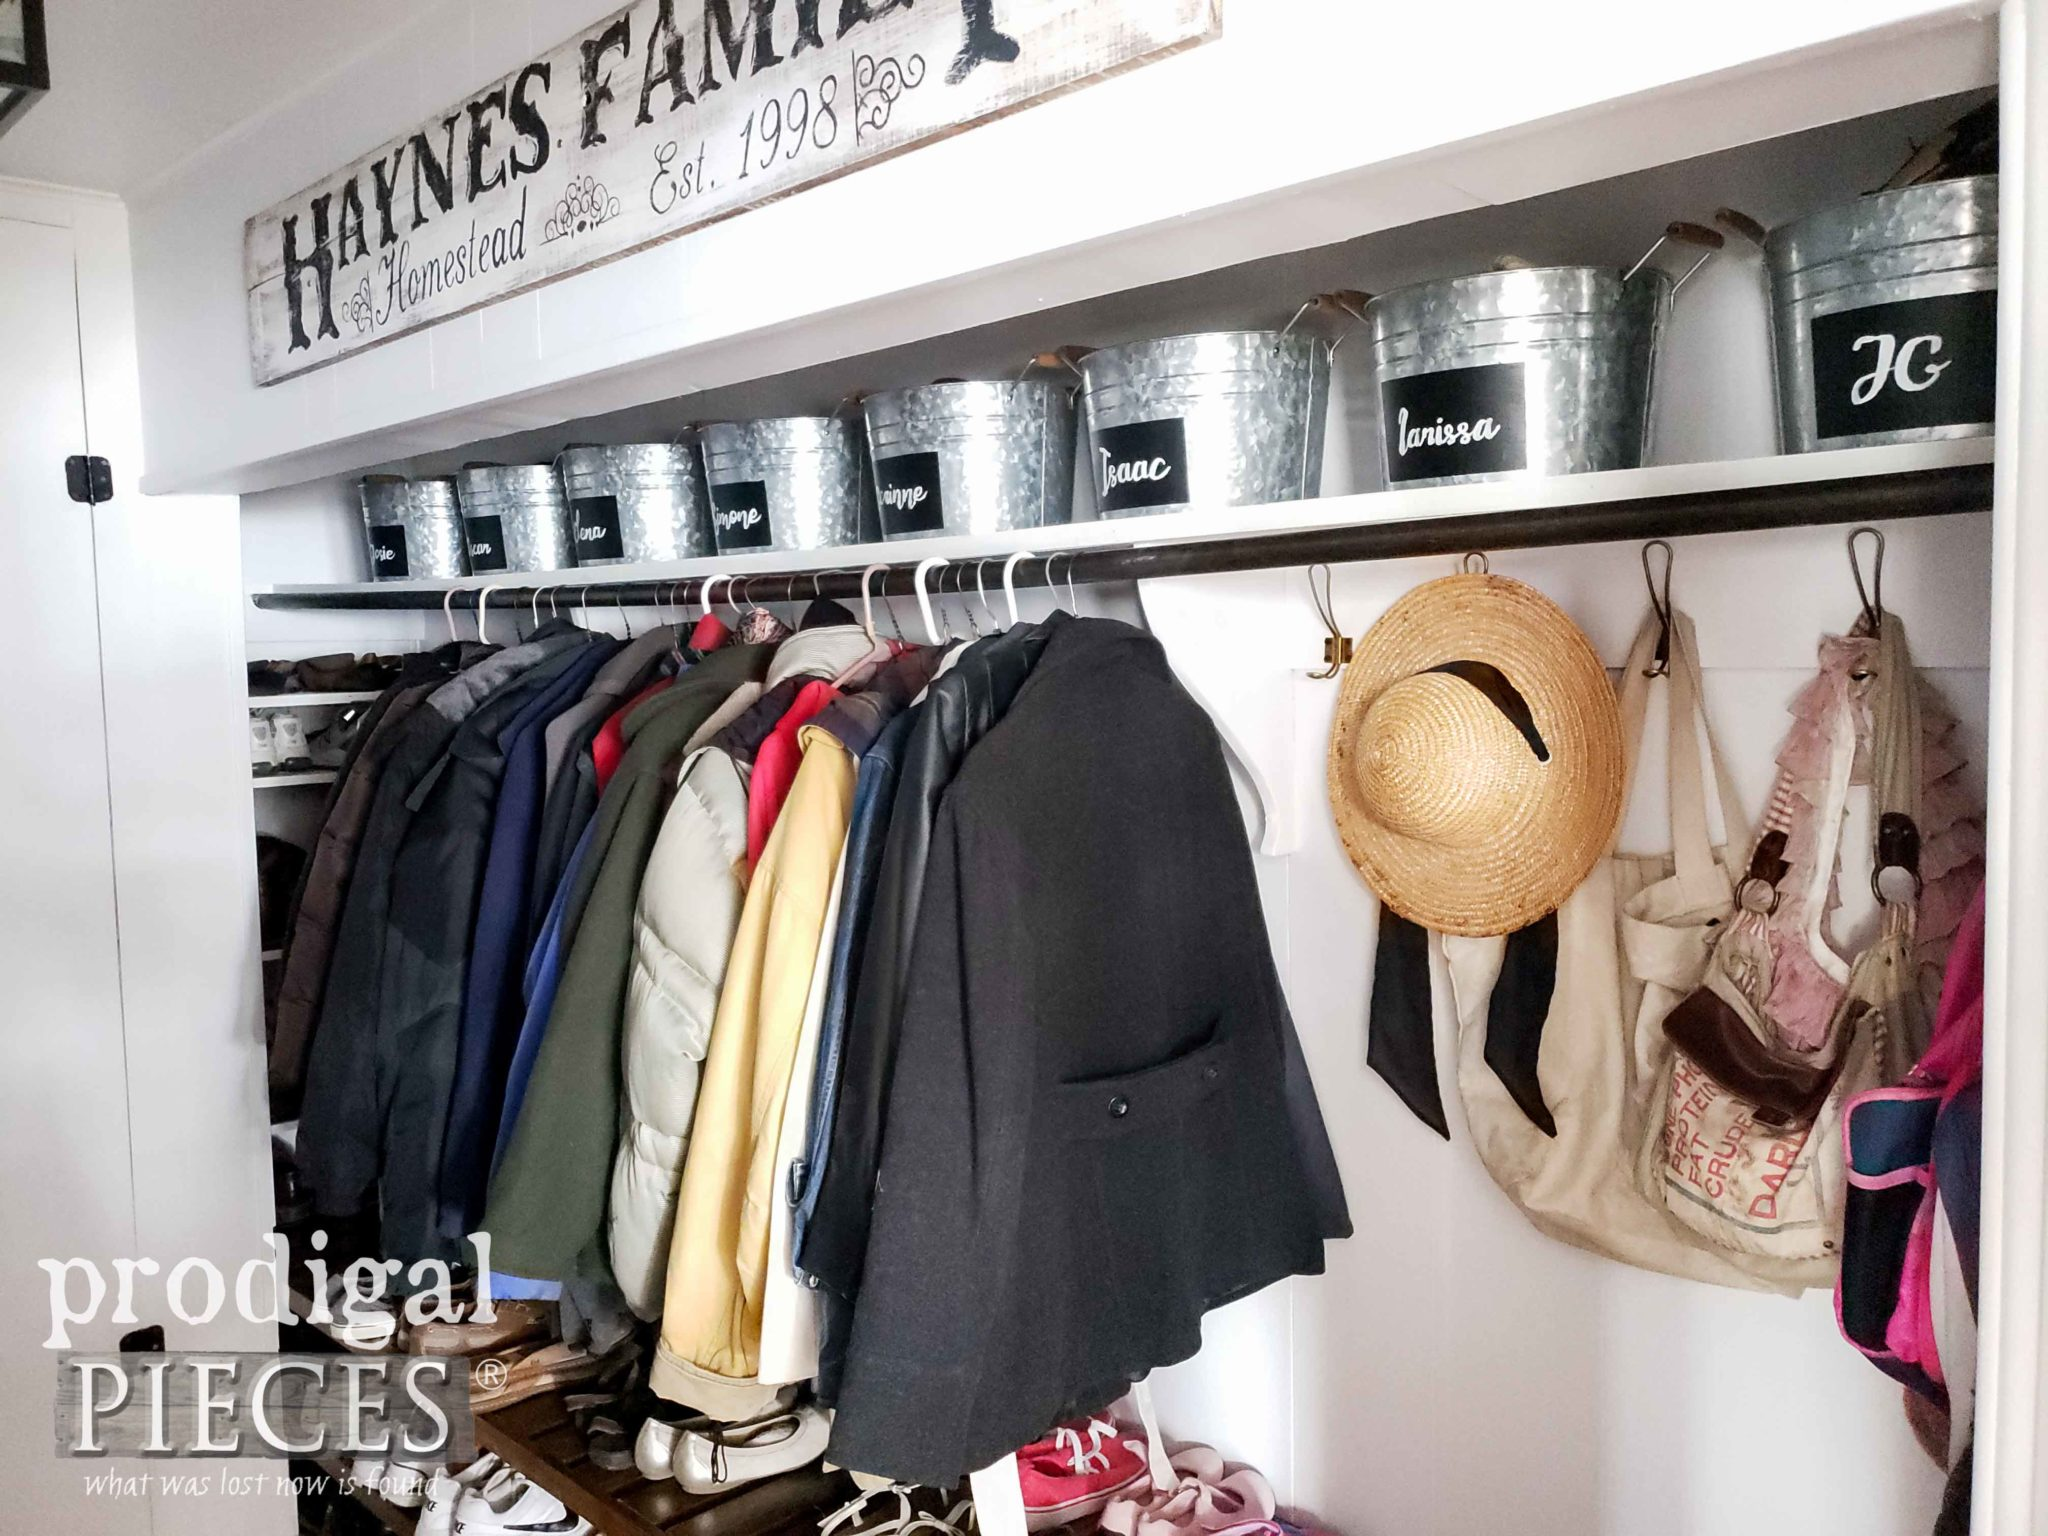 DIY Farmhouse Style Mudroom Storage on a Budget by Larissa of Prodigal Pieces | prodigalpieces.com #prodigalpieces #diy #home #farmhouse #homedecor #homeimprovement